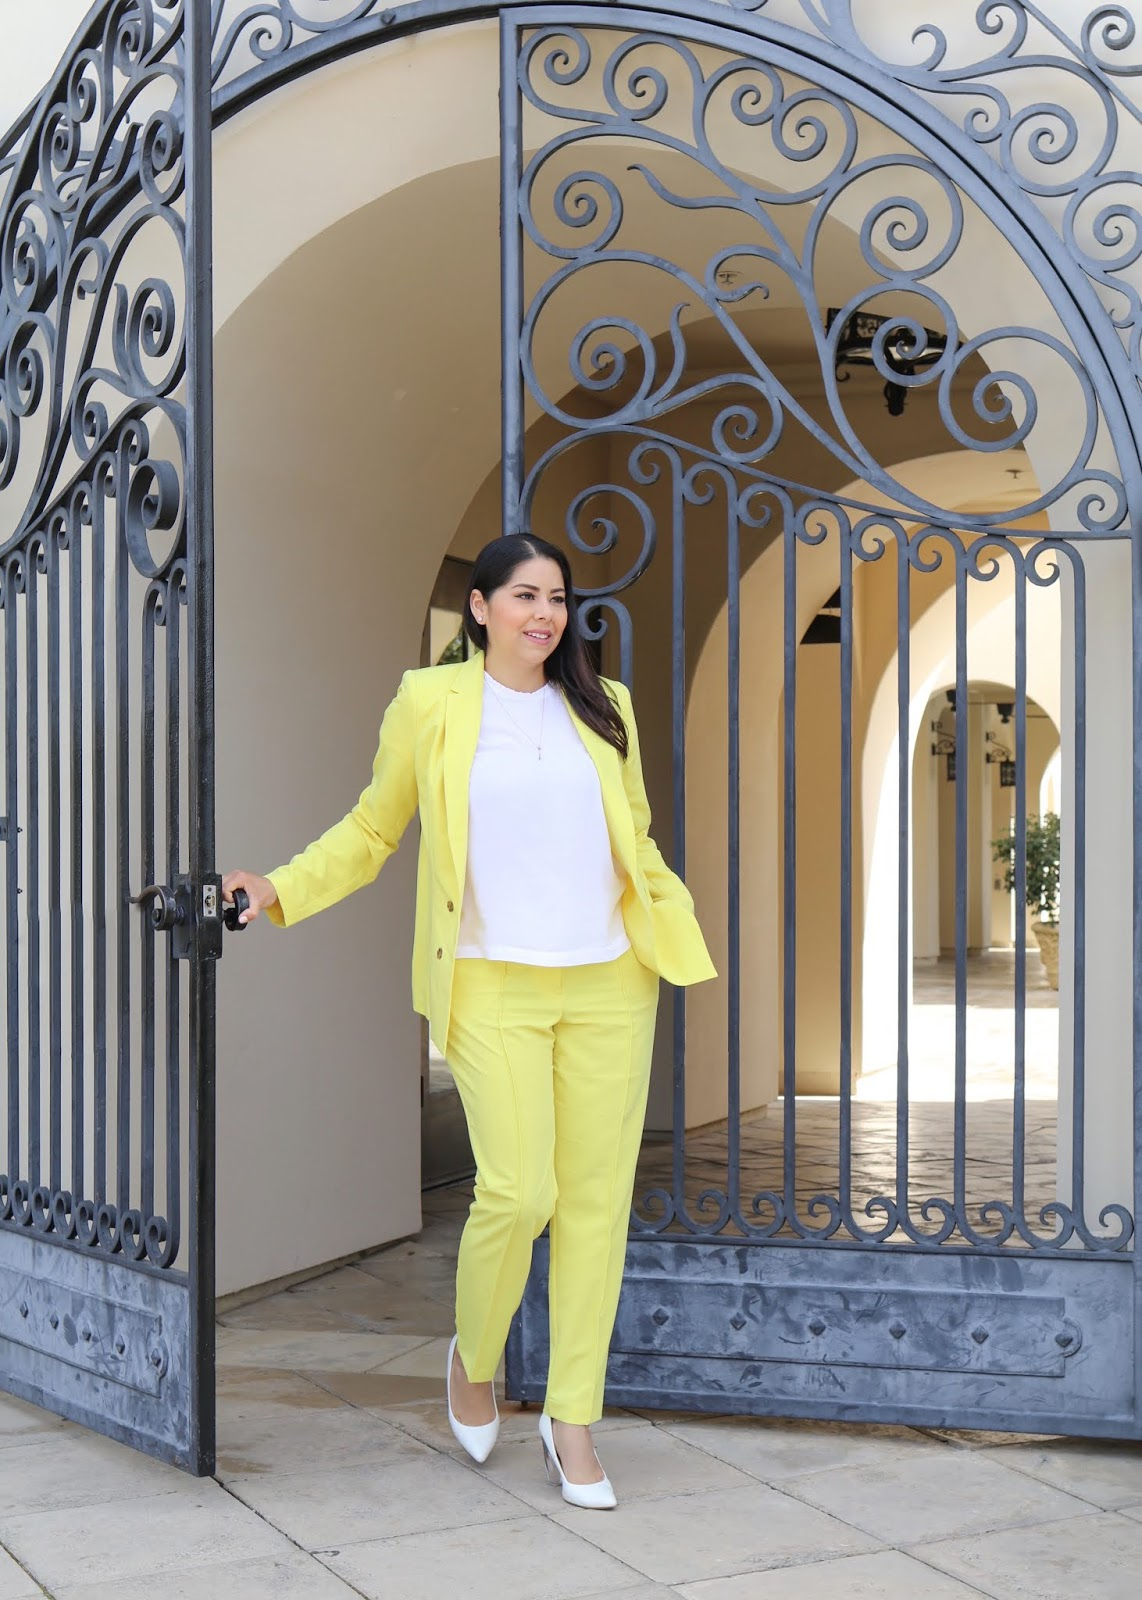 JCPenney Yellow blazer, JCPenney Yellow suit